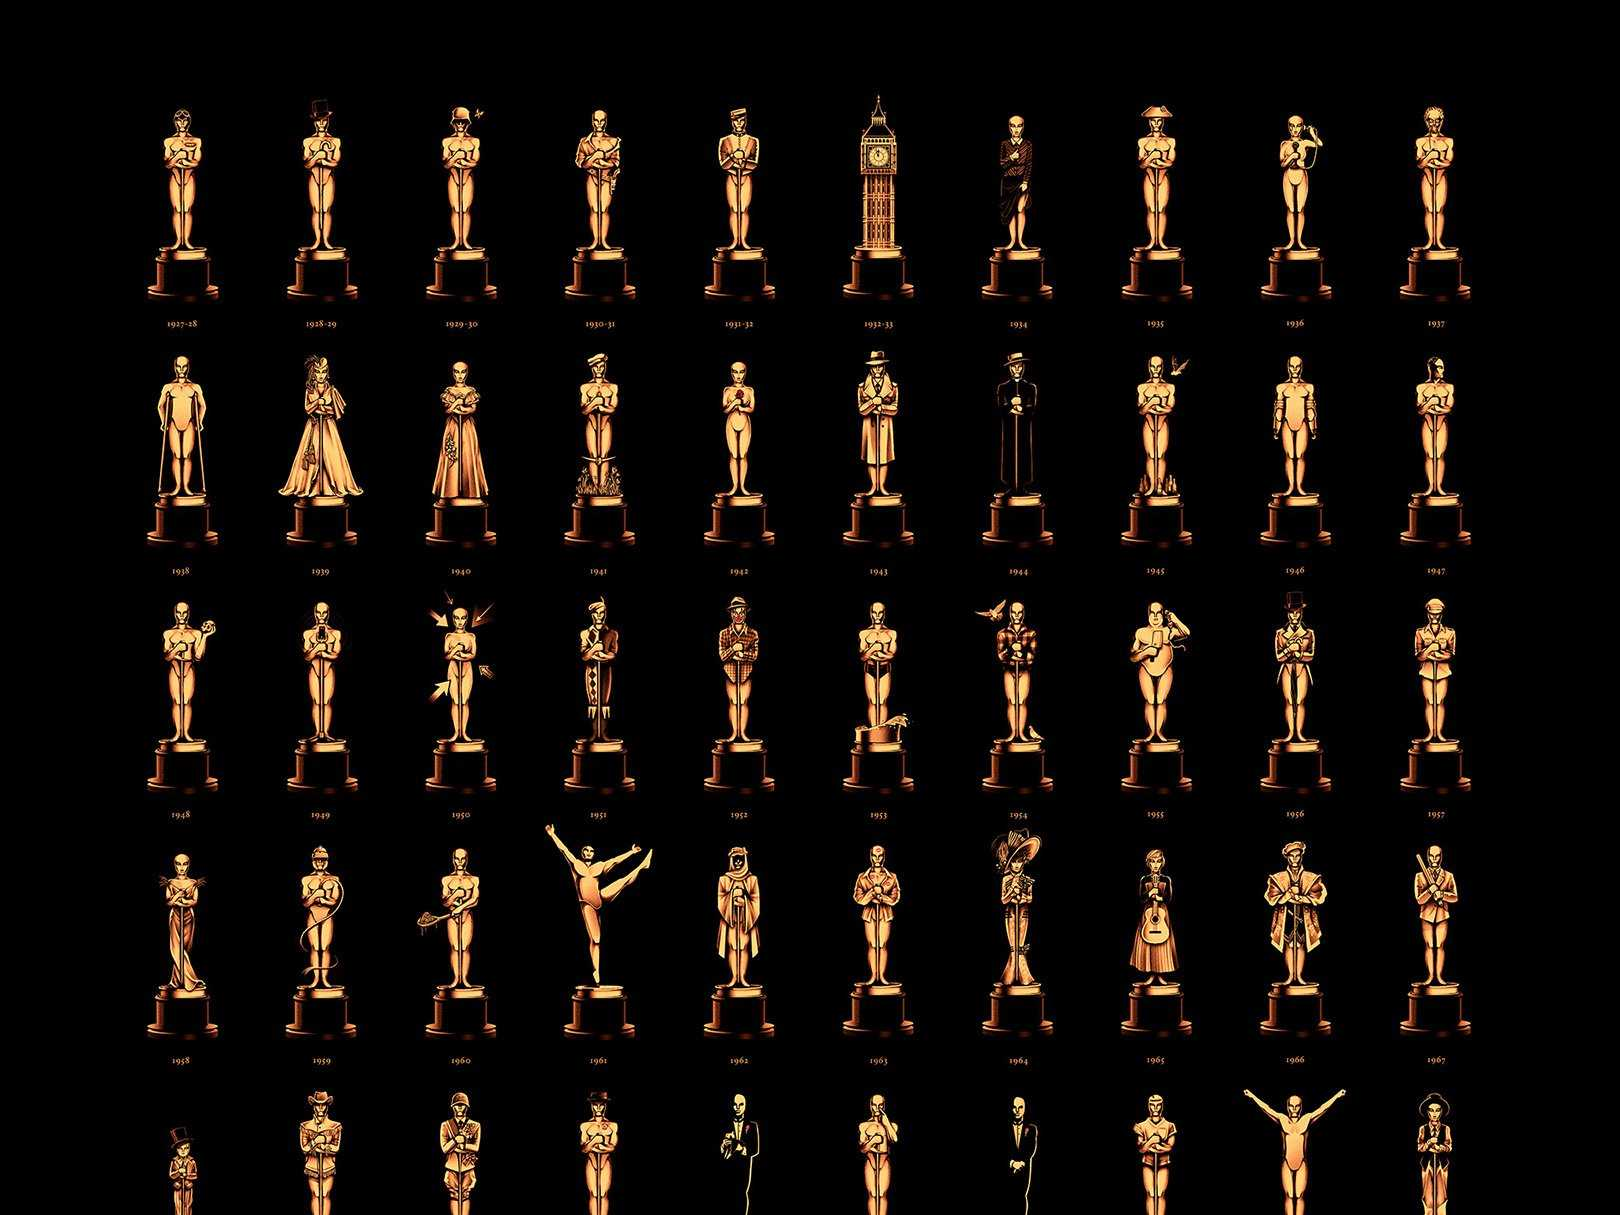 can-you-name-all-85-best-picture-winners-referenced-in-this-wonderful-oscars-ad